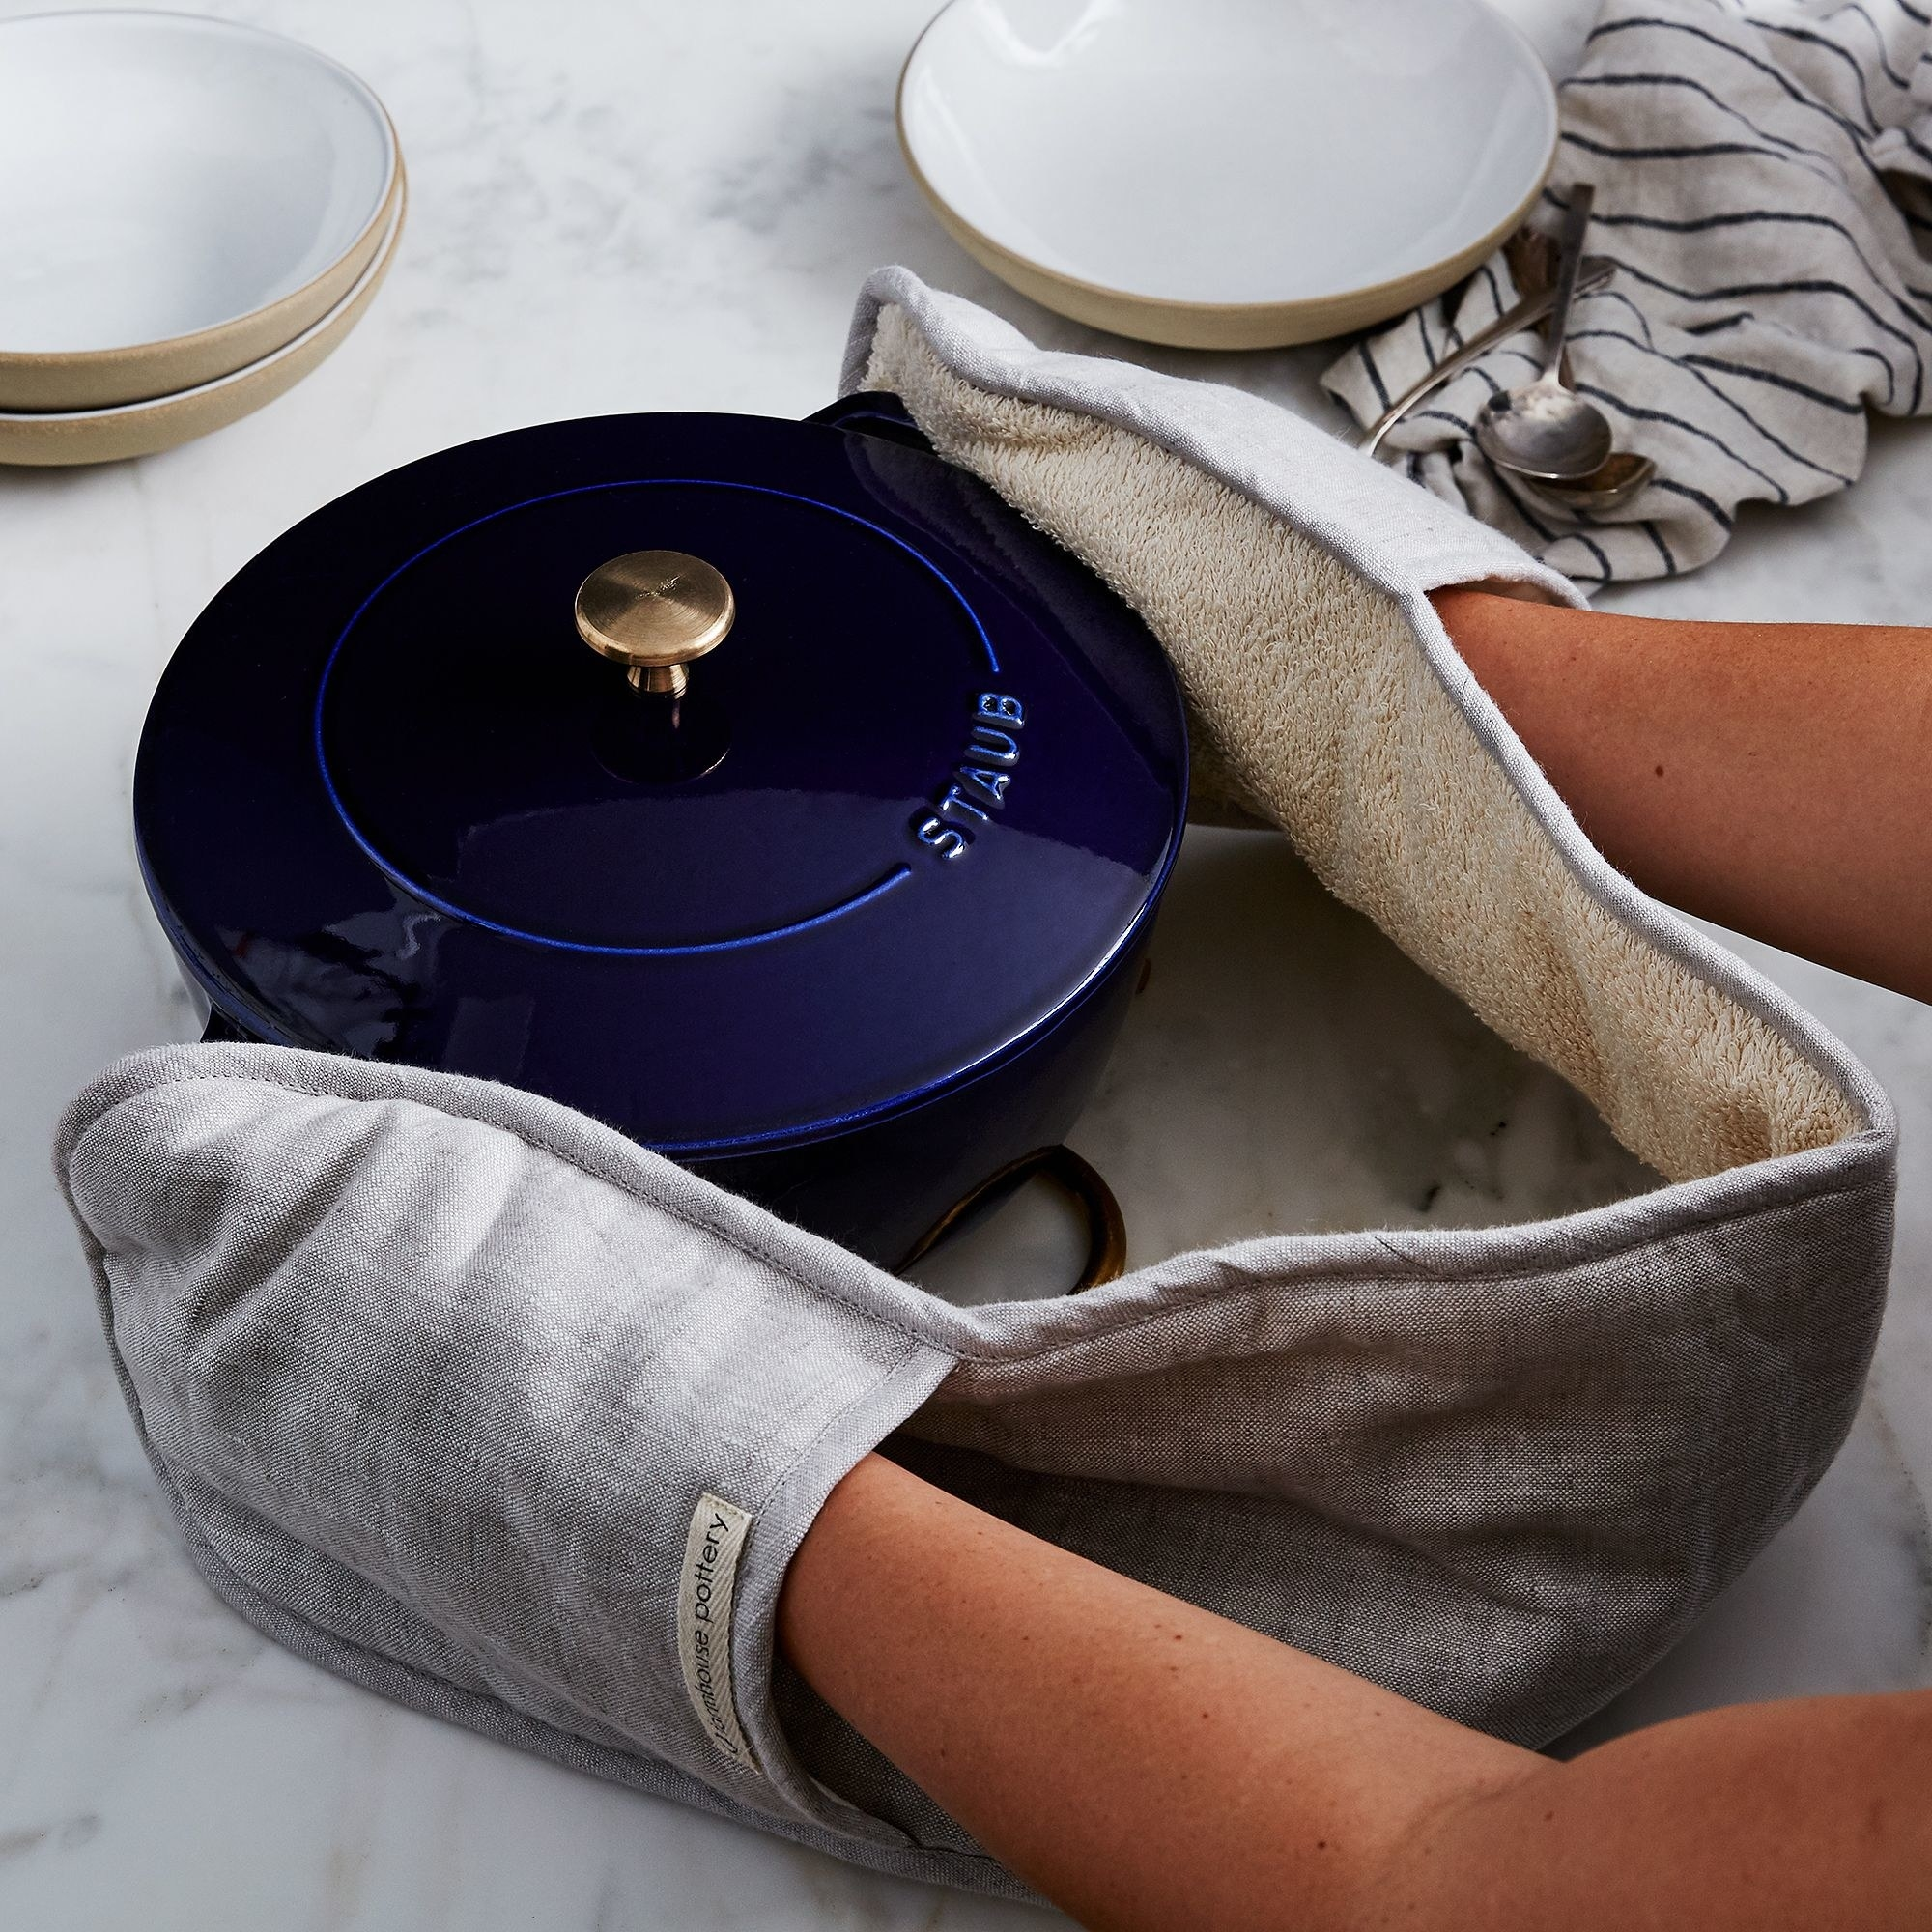 Wrap-around linen mitt being used to hold a Staub pot